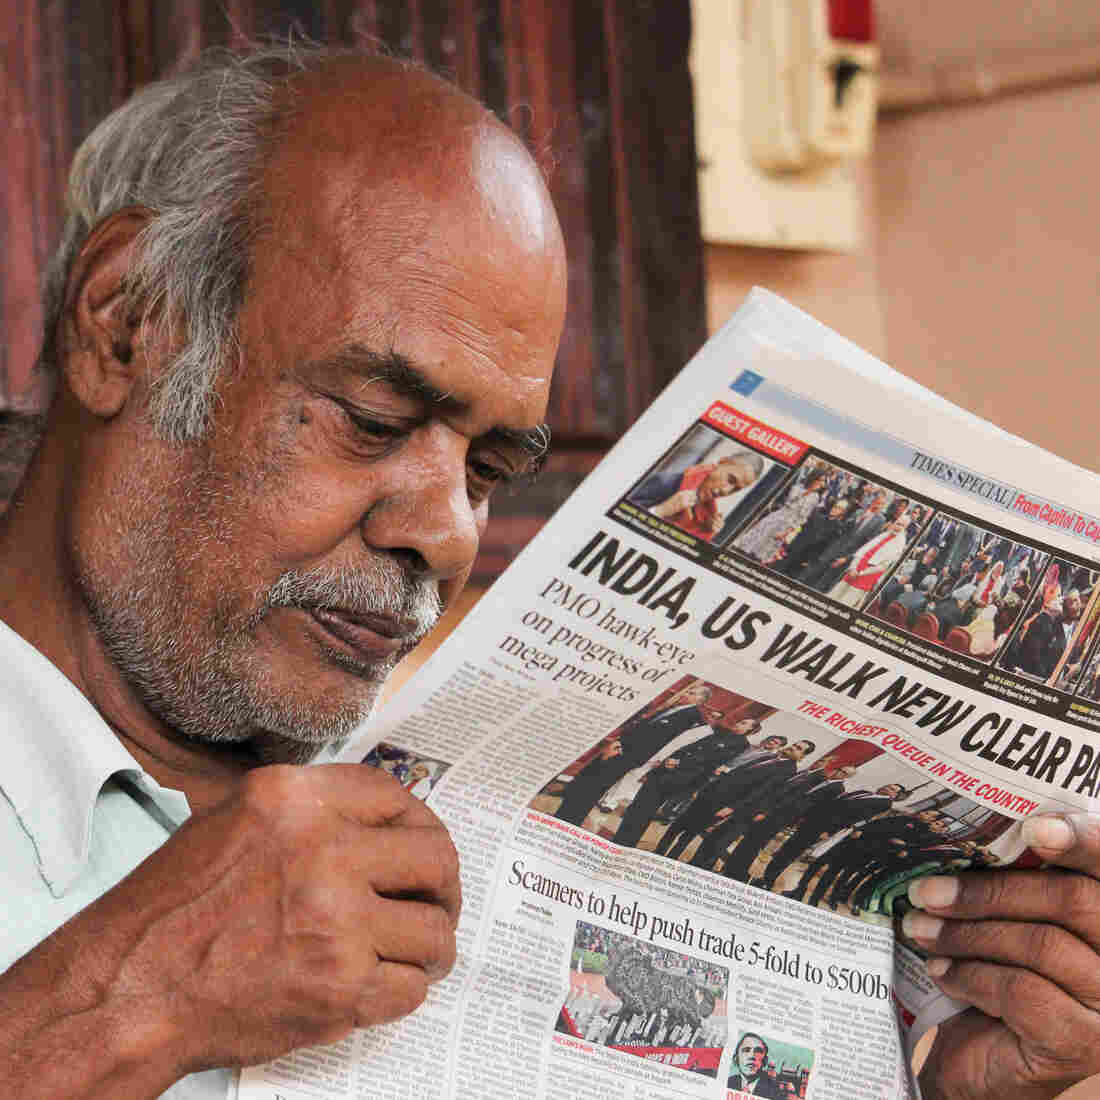 Alagarsamy wasn't impressed by President Obama's pledge to improve Internet access in India. The 73-year-old likes to get his news the old-school way: on paper.